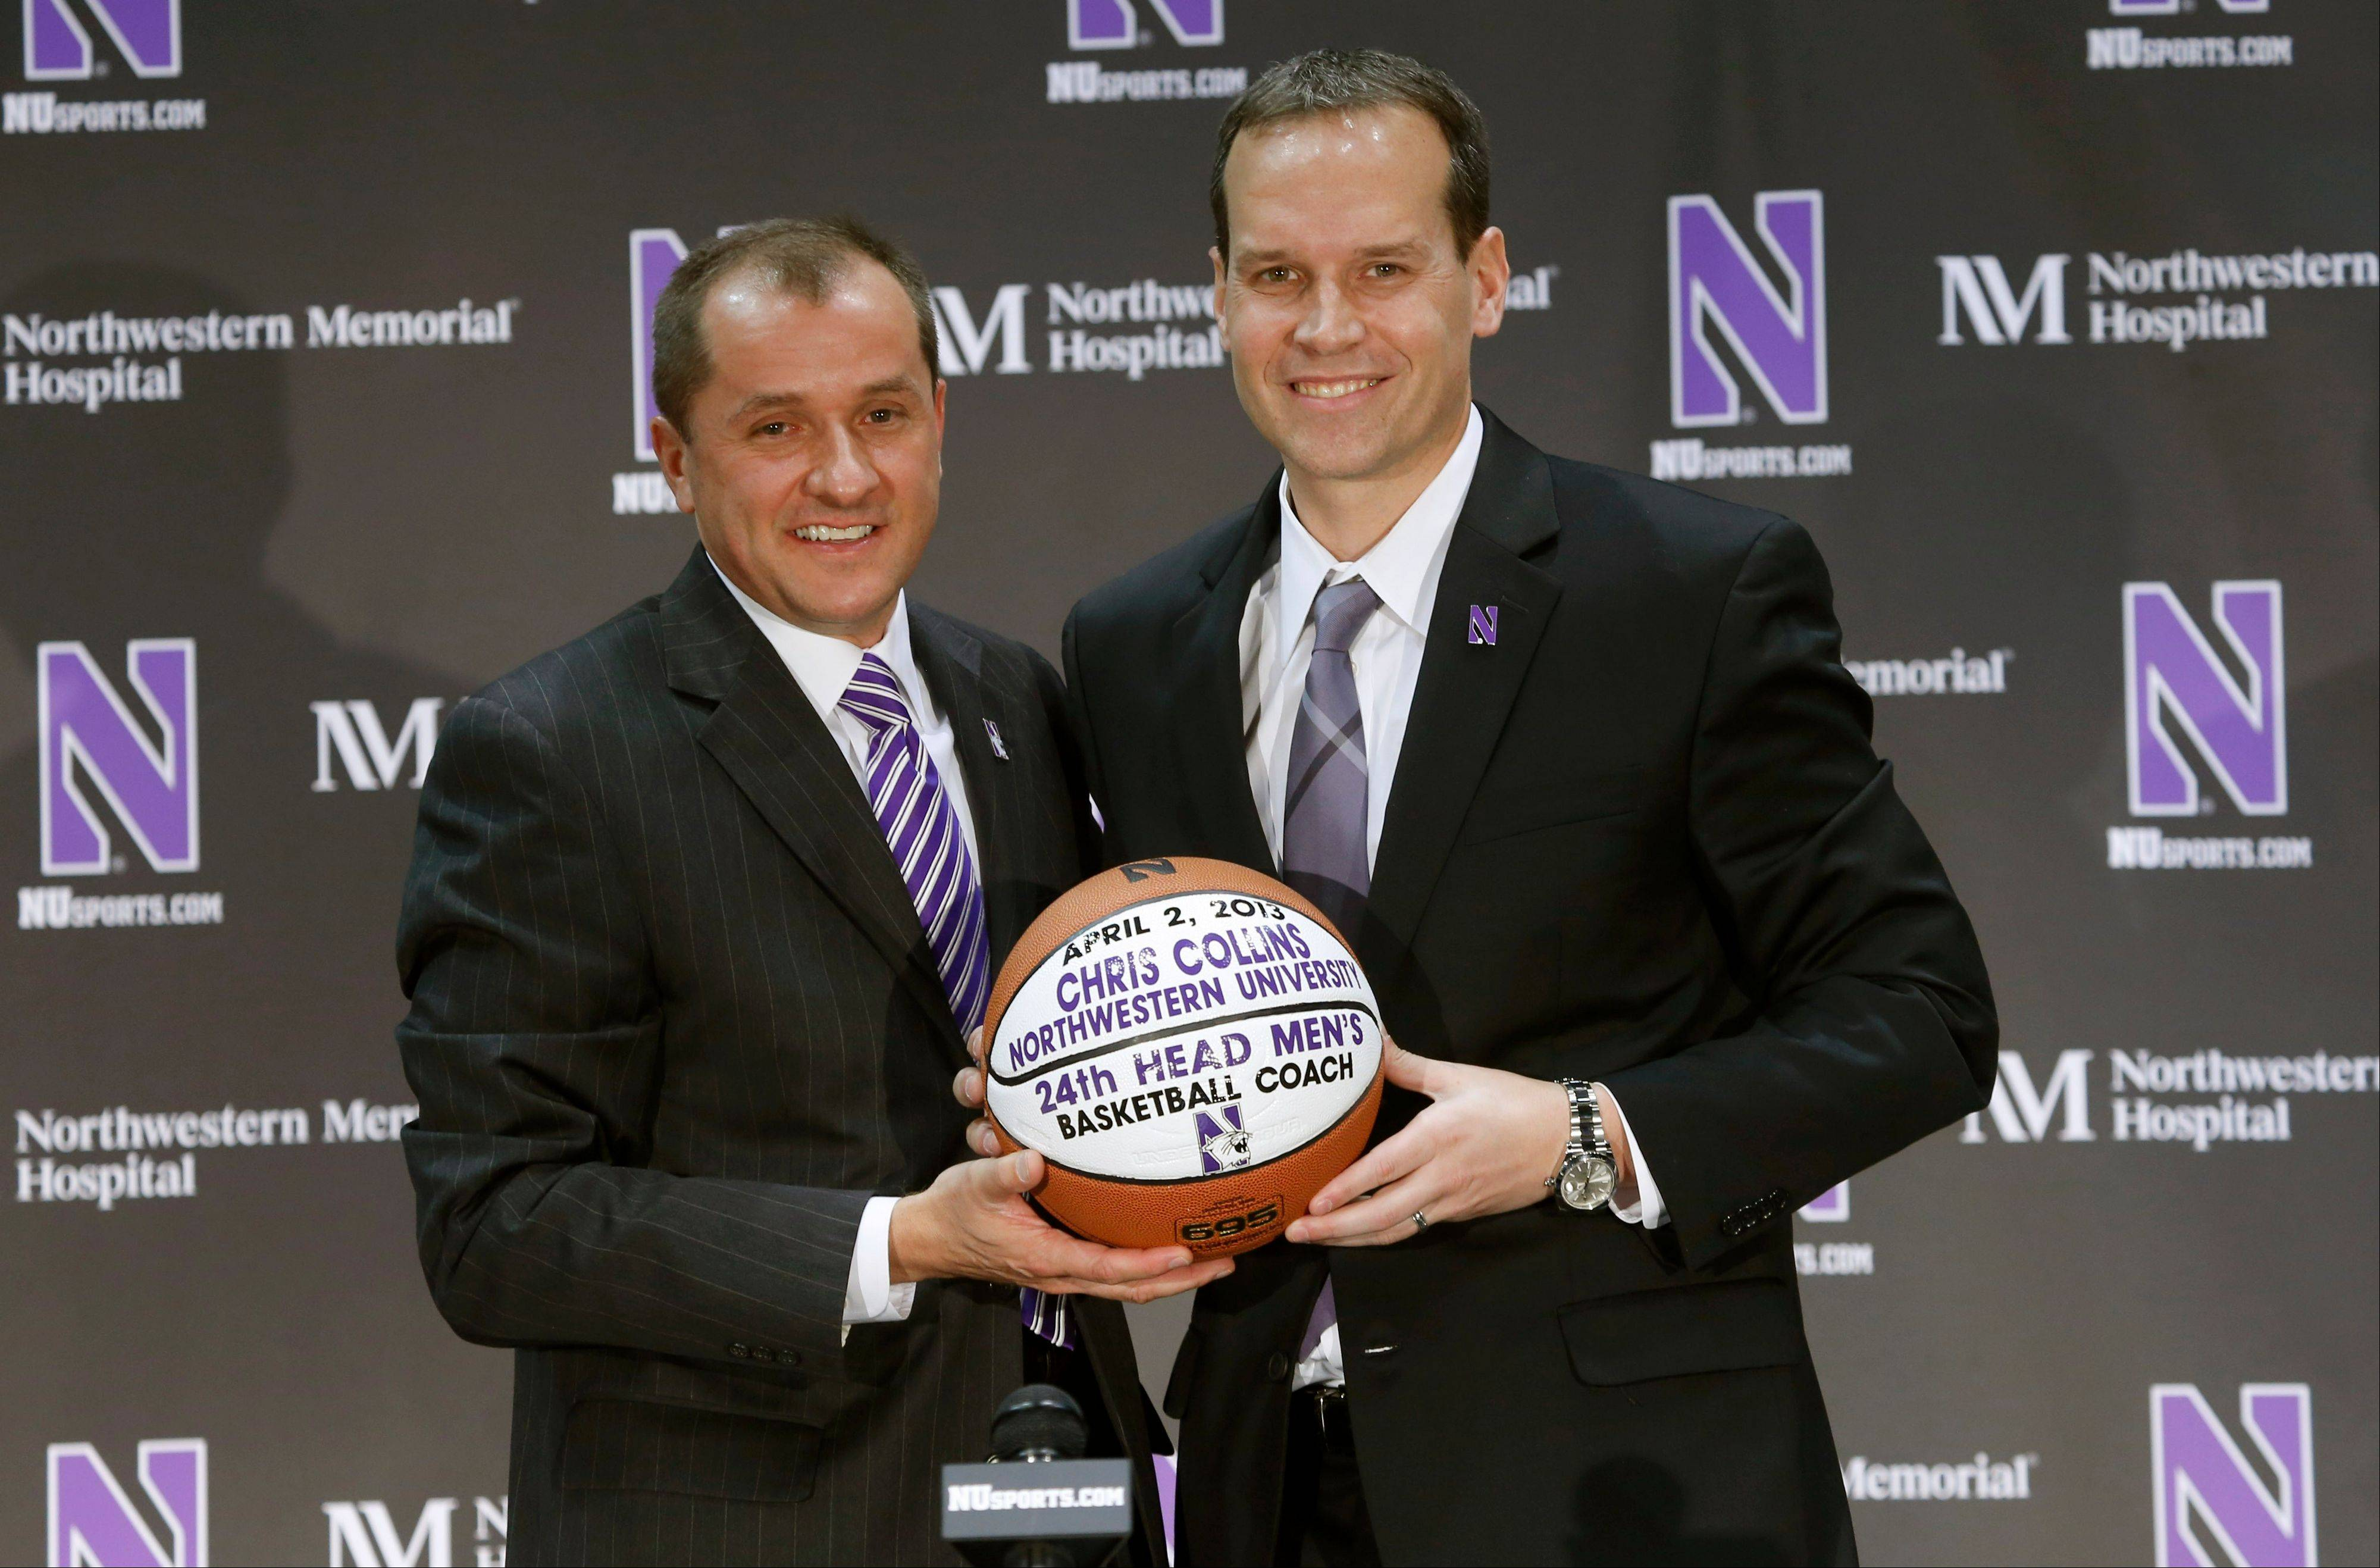 Northwestern University Athletic Director Jim Phillips, left, stands with former Duke University assistant coach Chris Collins after Phillips introduced Collins as the new head men's basketball coach at Northwestern during a news conference Tuesday, April 2, 2013 in Evanston, Ill.